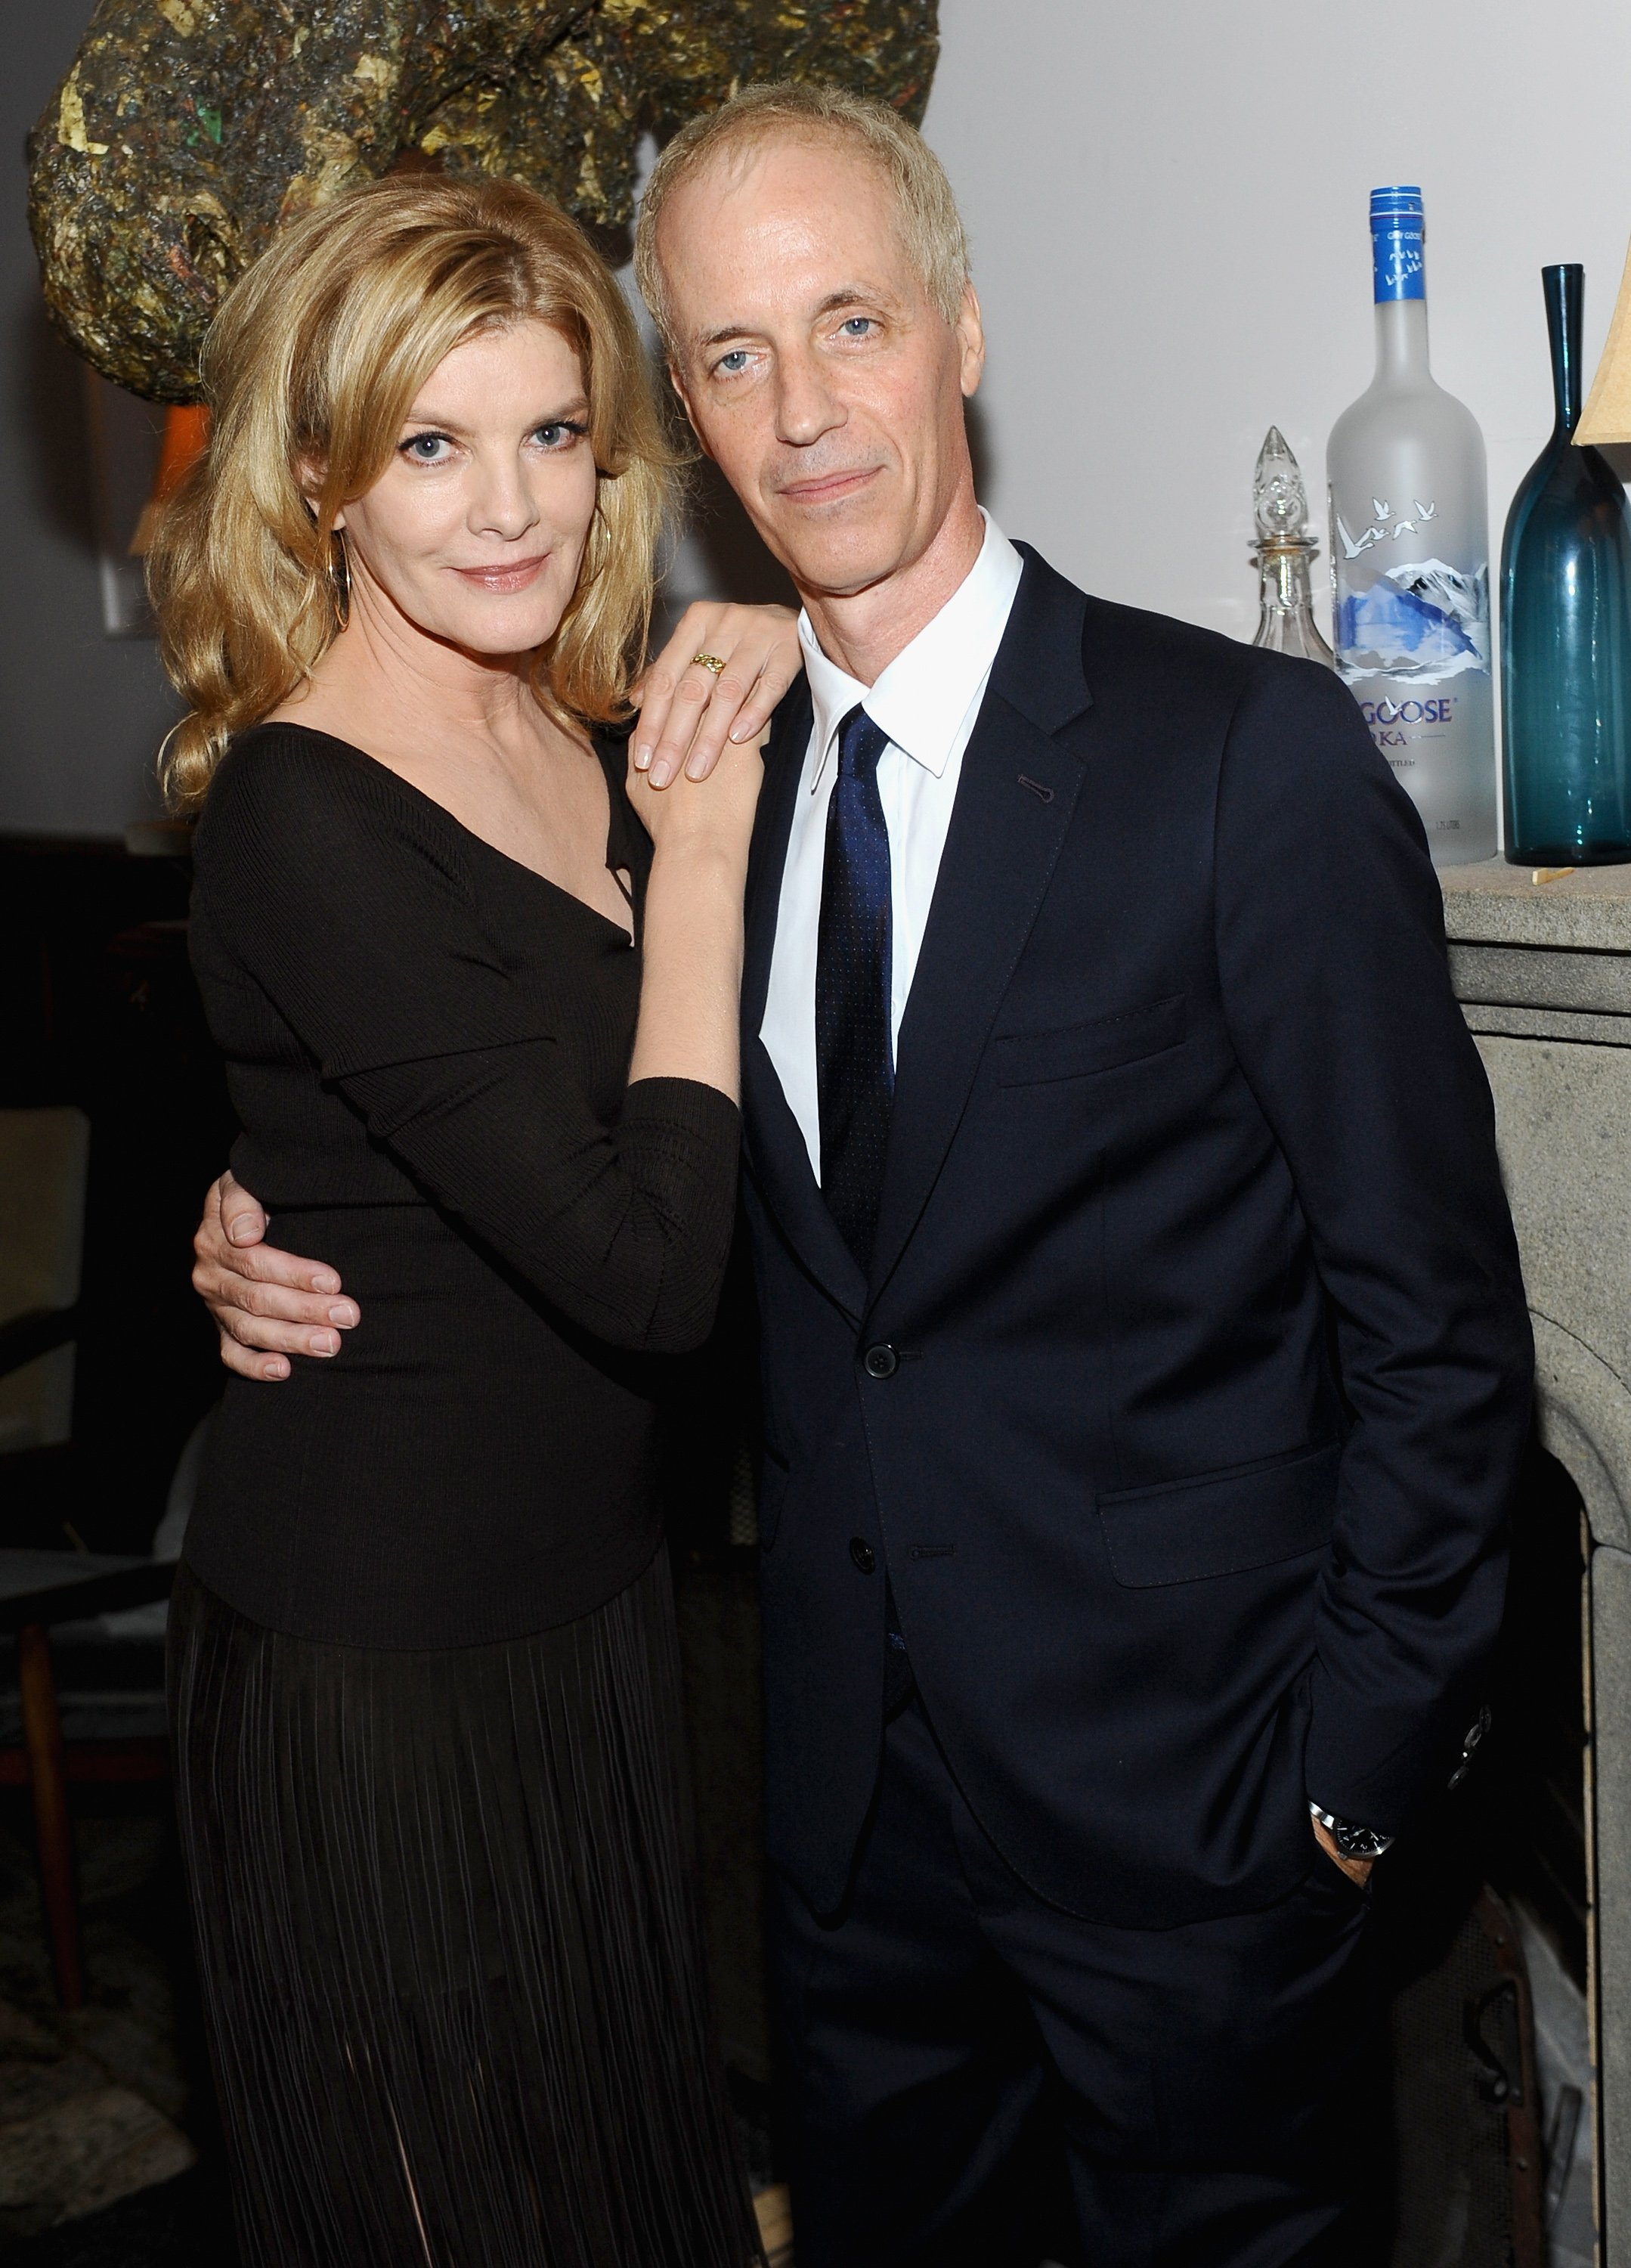 Actress Rene Russo and director Dan Gilroy at the 'NIGHTCRAWLER' World Premiere on September 5, 2014 in Toronto. | Source: Getty Images